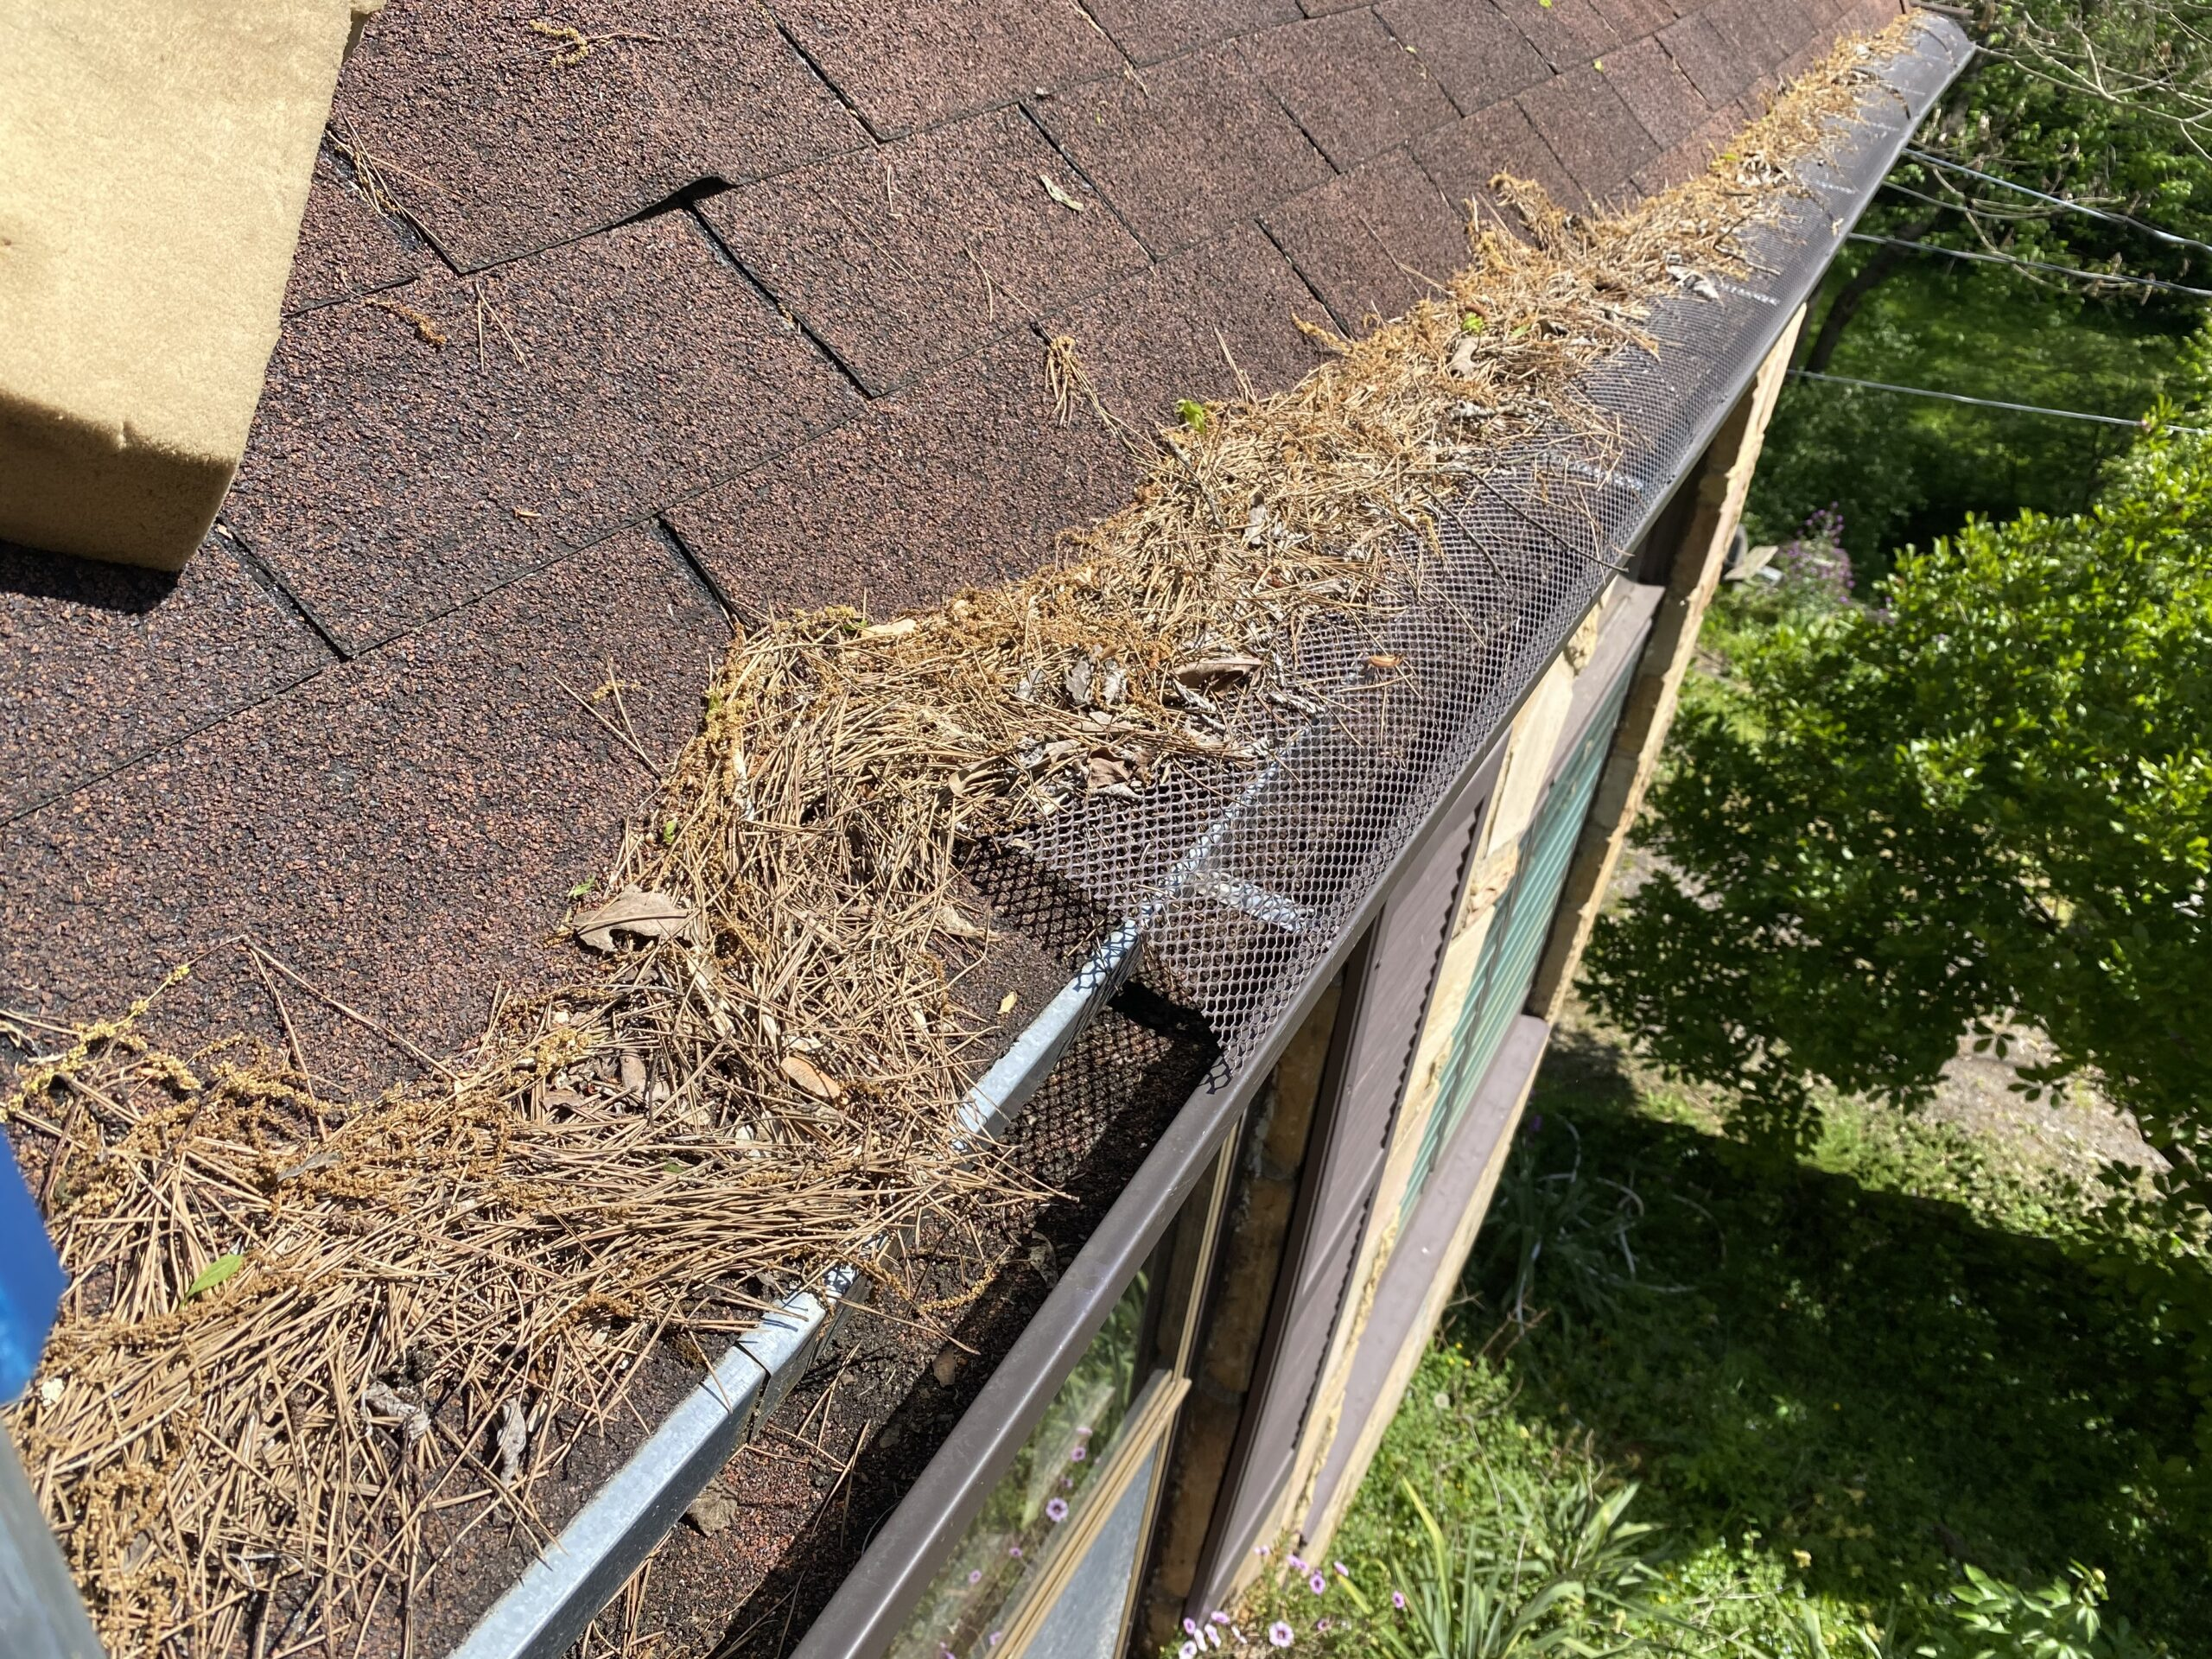 This is a picture of gutter guards that are missing in a gutter